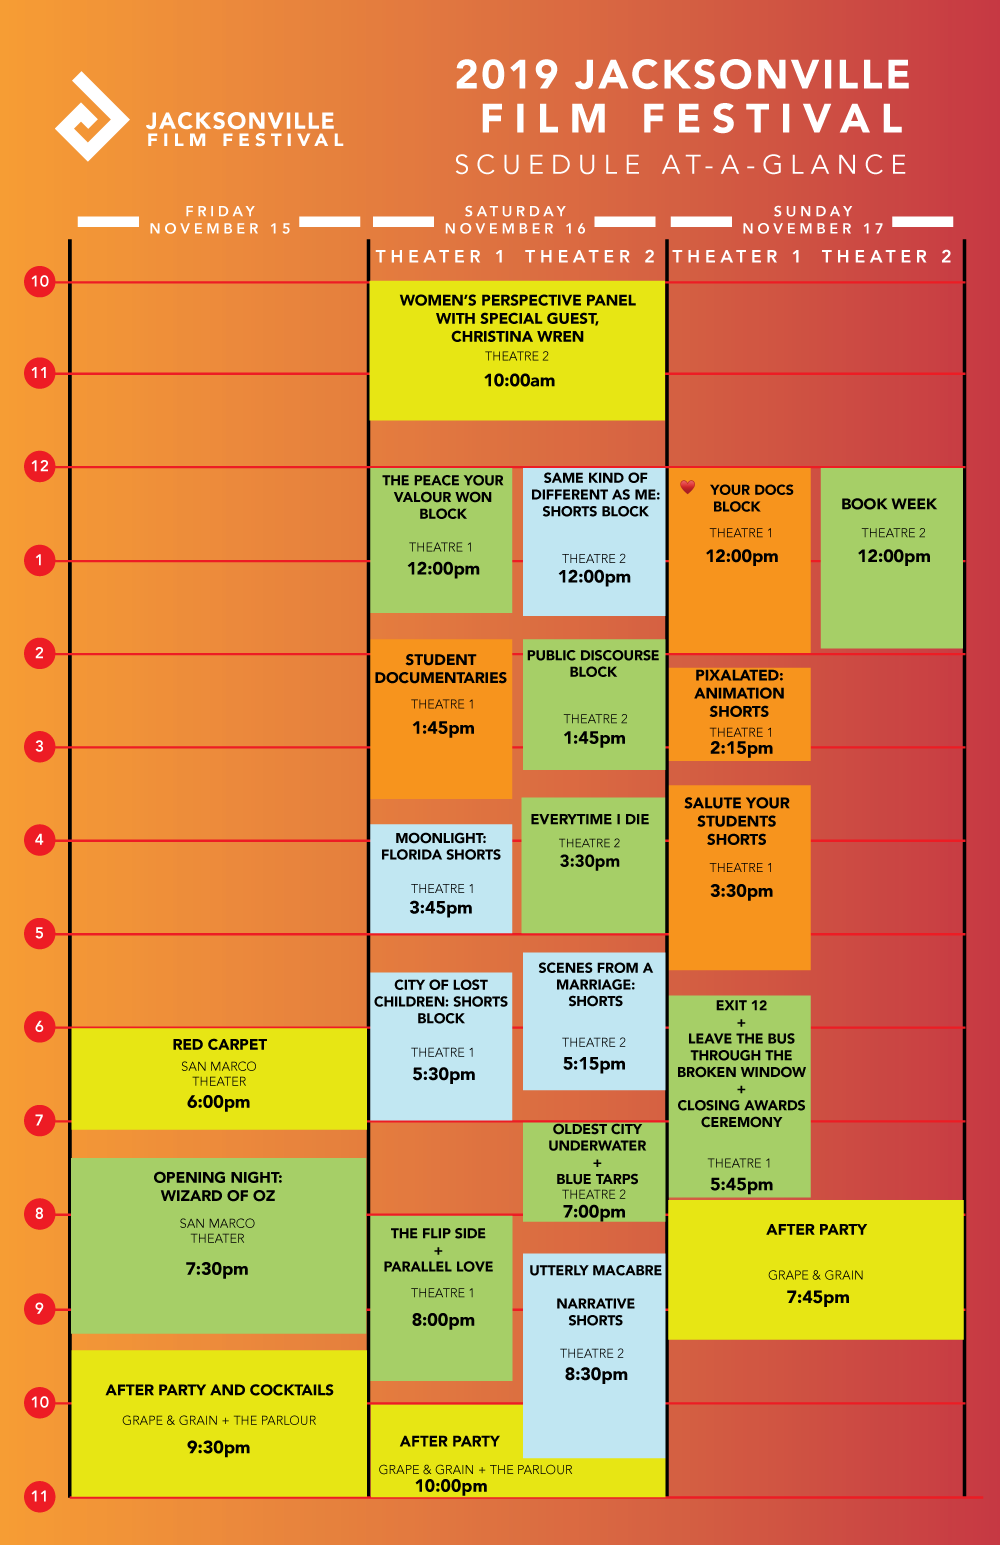 Schedule-glance6.png